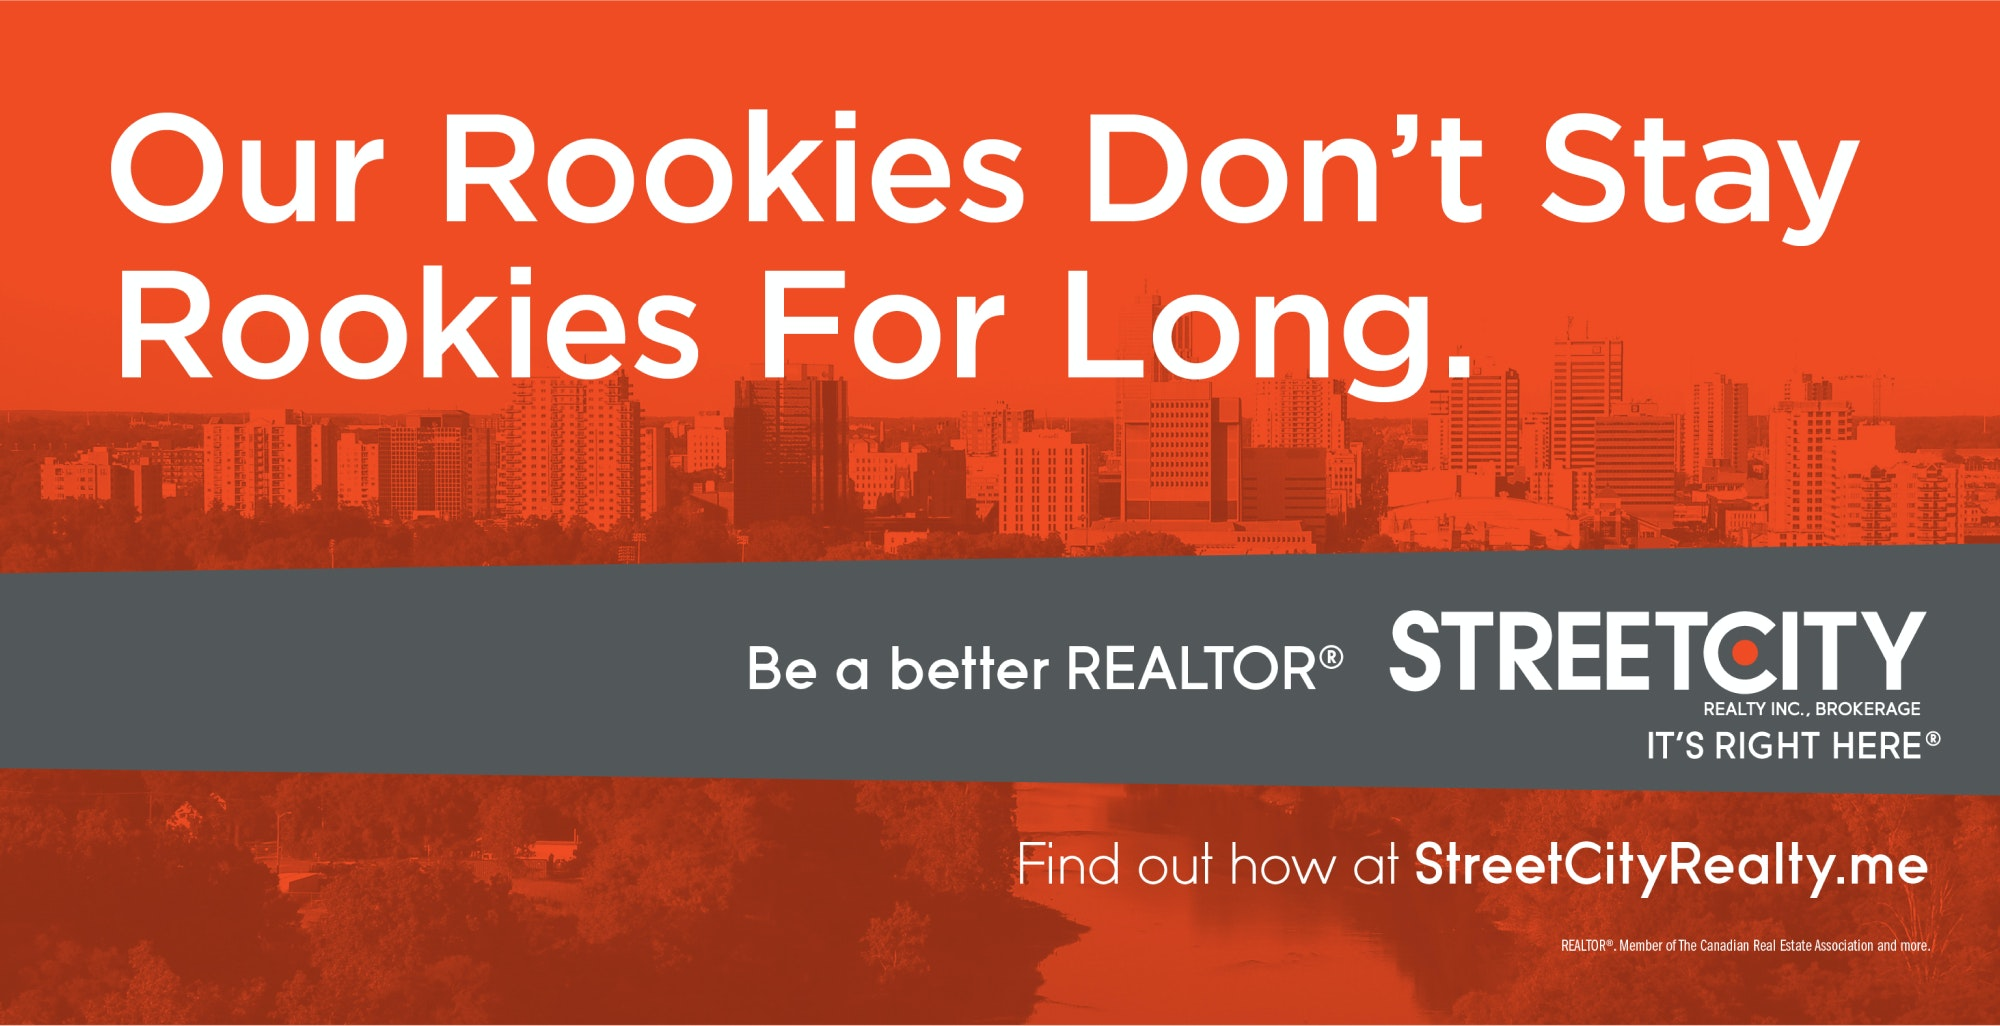 Billboard ad that states 'Our Rookies Don't Stay Rookies for Long'